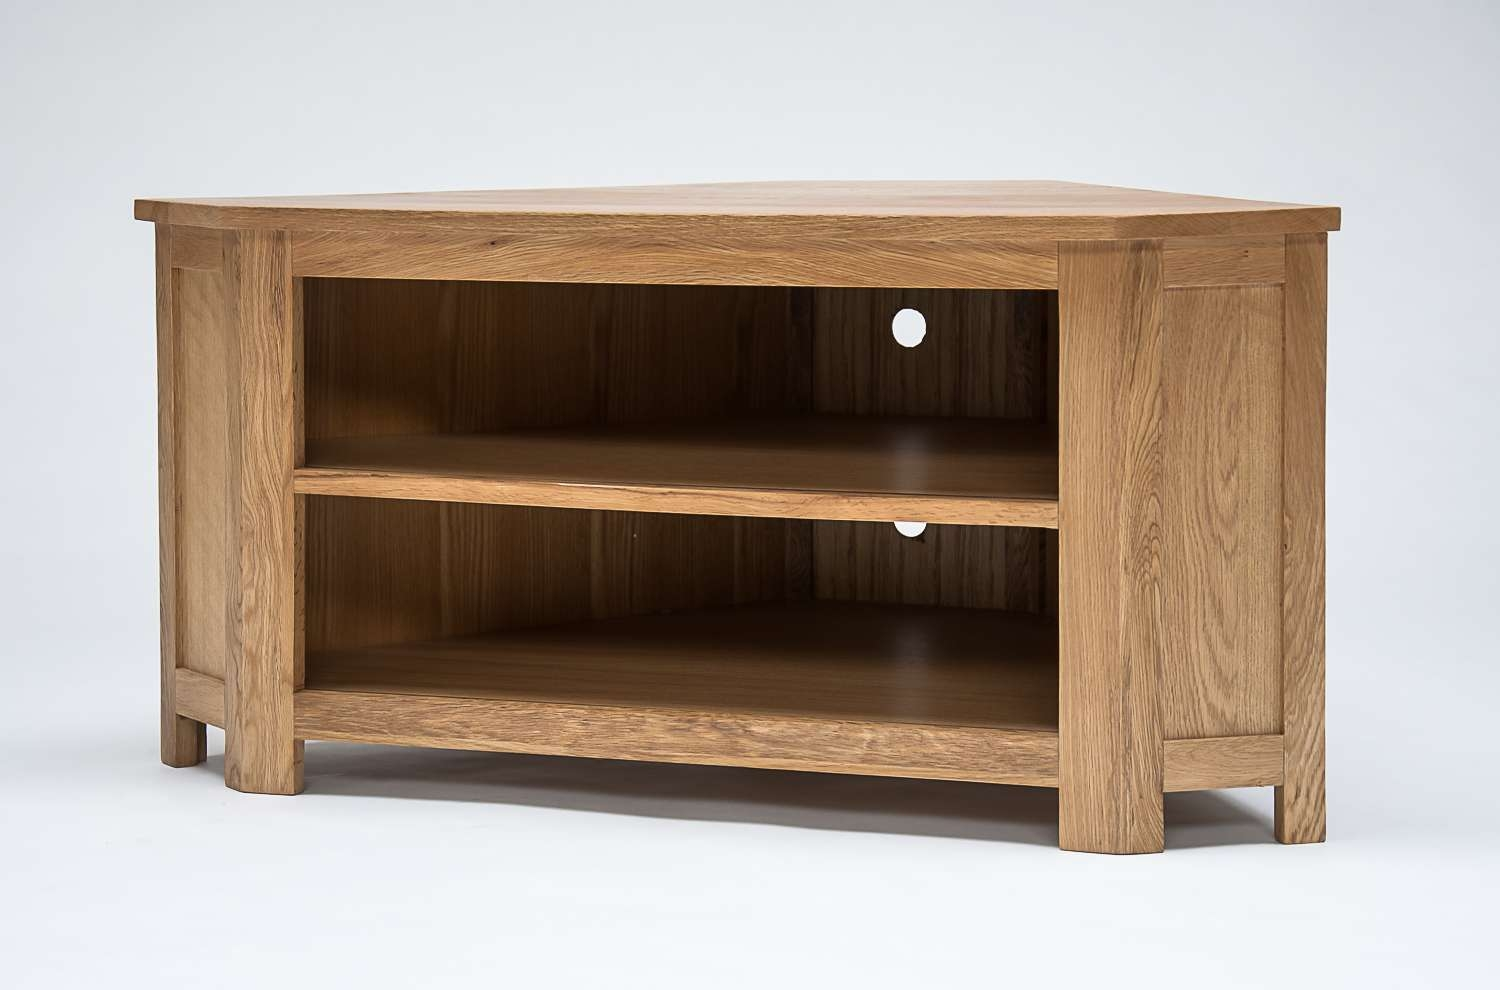 Lansdown Oak Low Corner Tv Cabinet | Oak Furniture Solutions Regarding Corner Tv Cabinets (View 10 of 20)